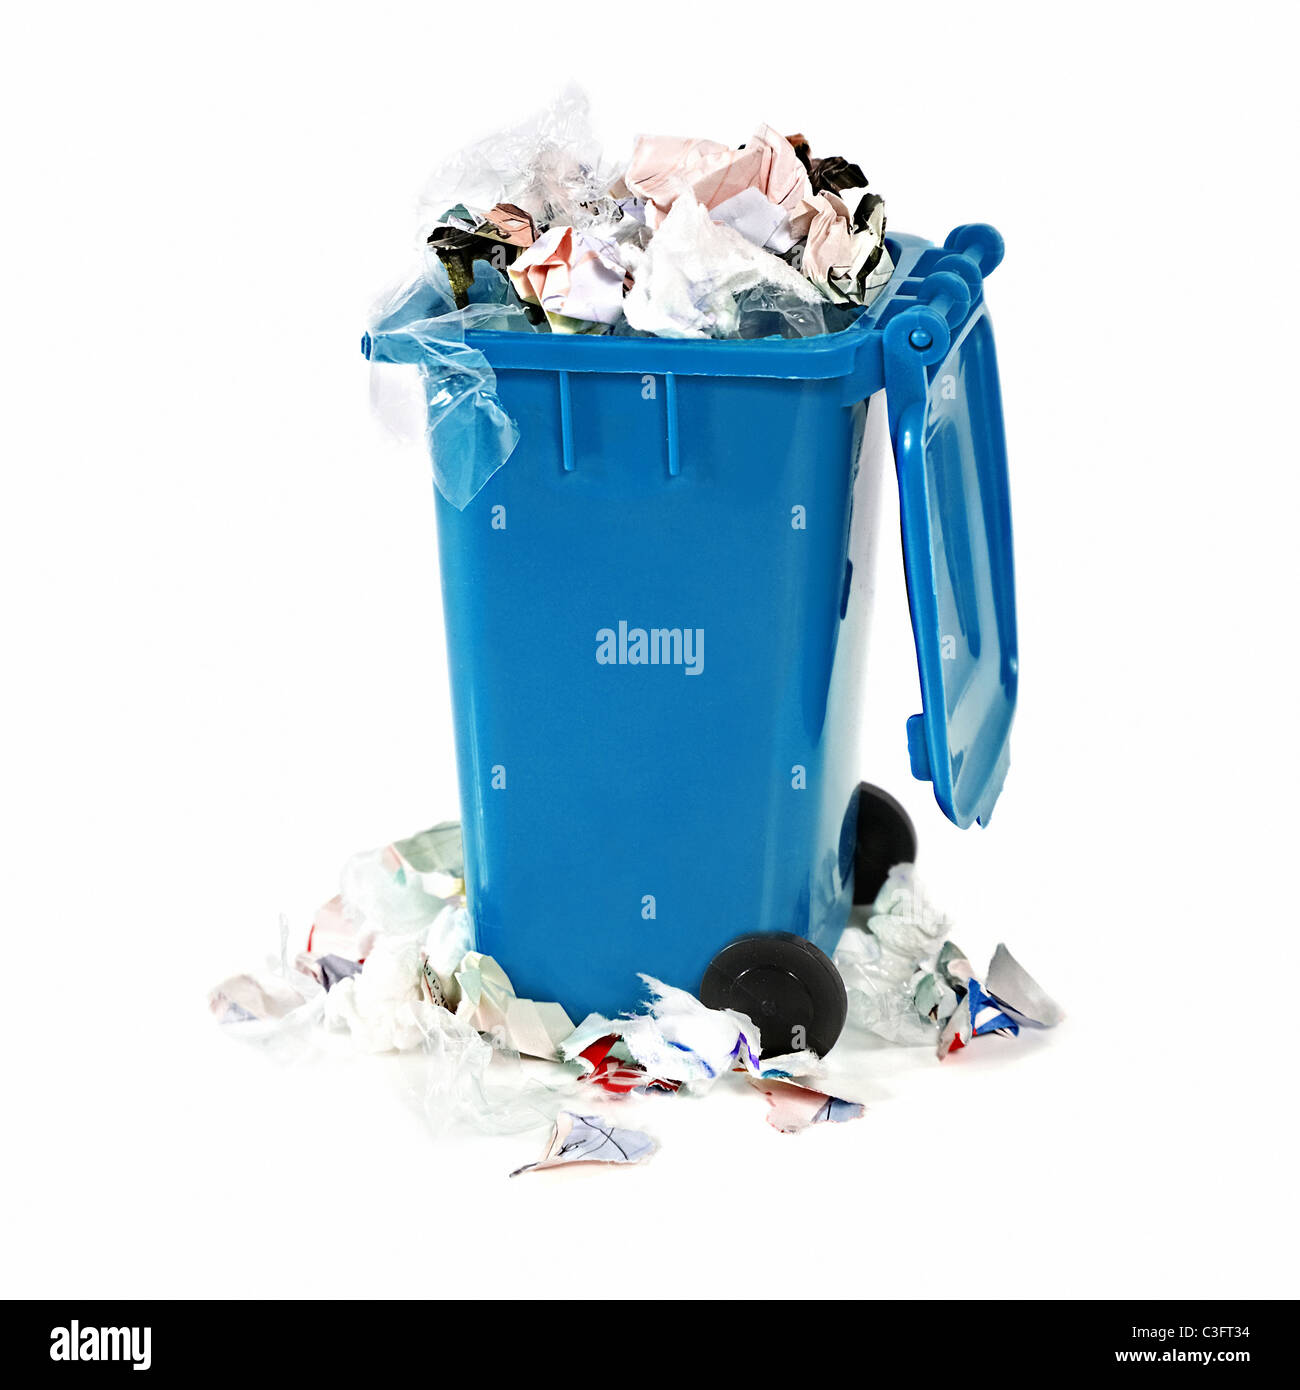 overflowing blue garbage bin on white background - Stock Image